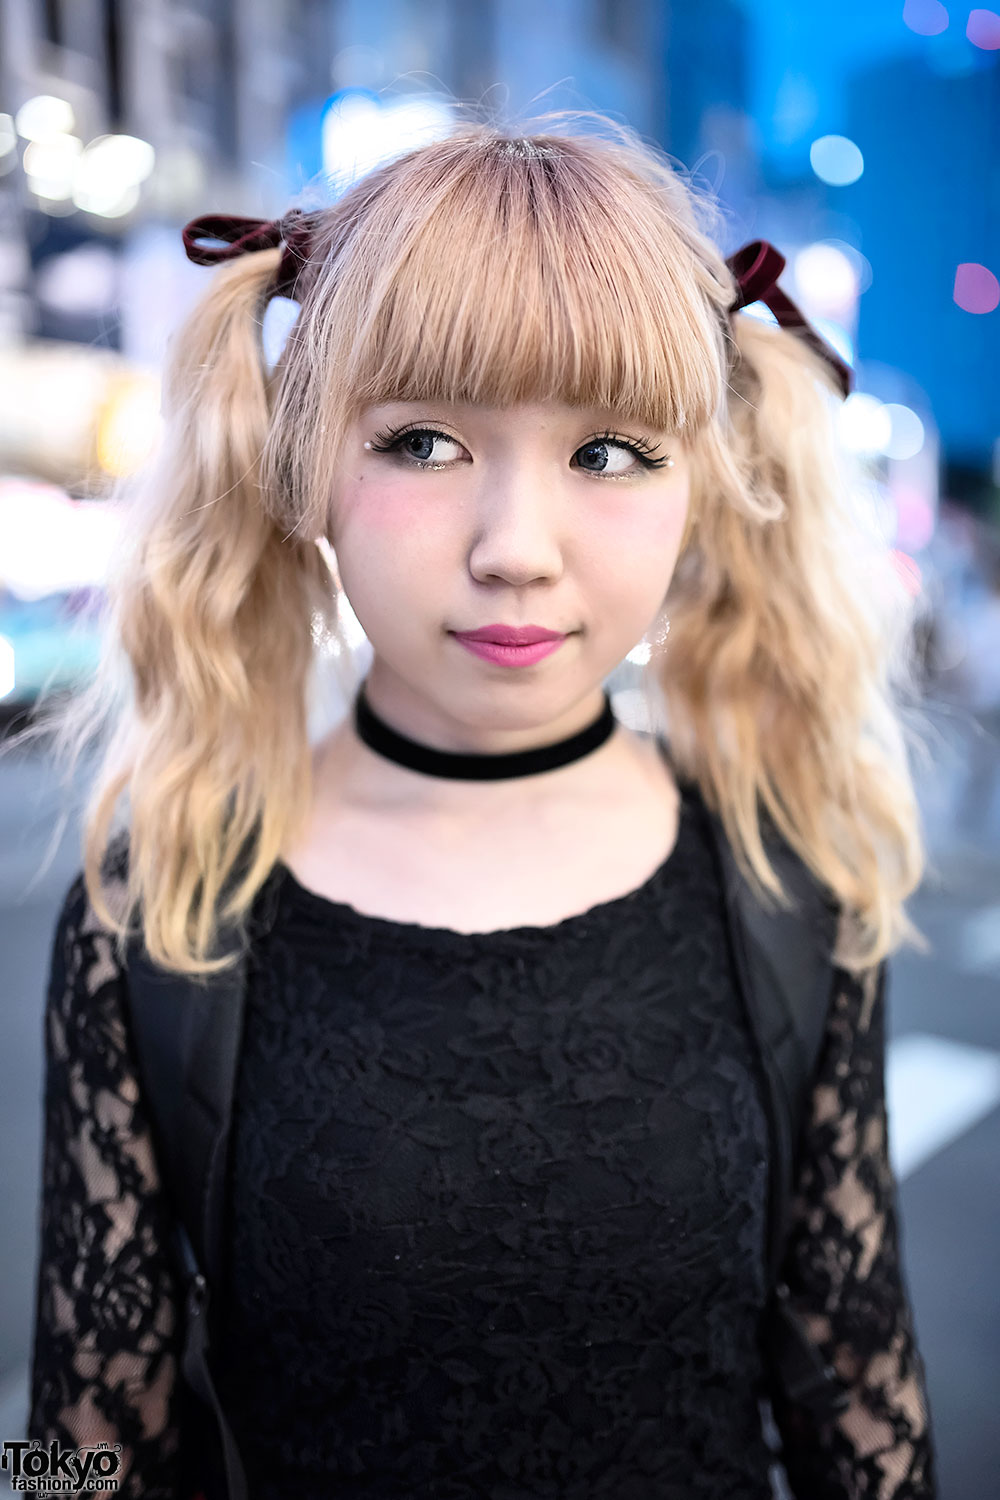 Blonde Twintails, Black Lace, Plaid Skirt & Tokyo Bopper in Harajuku